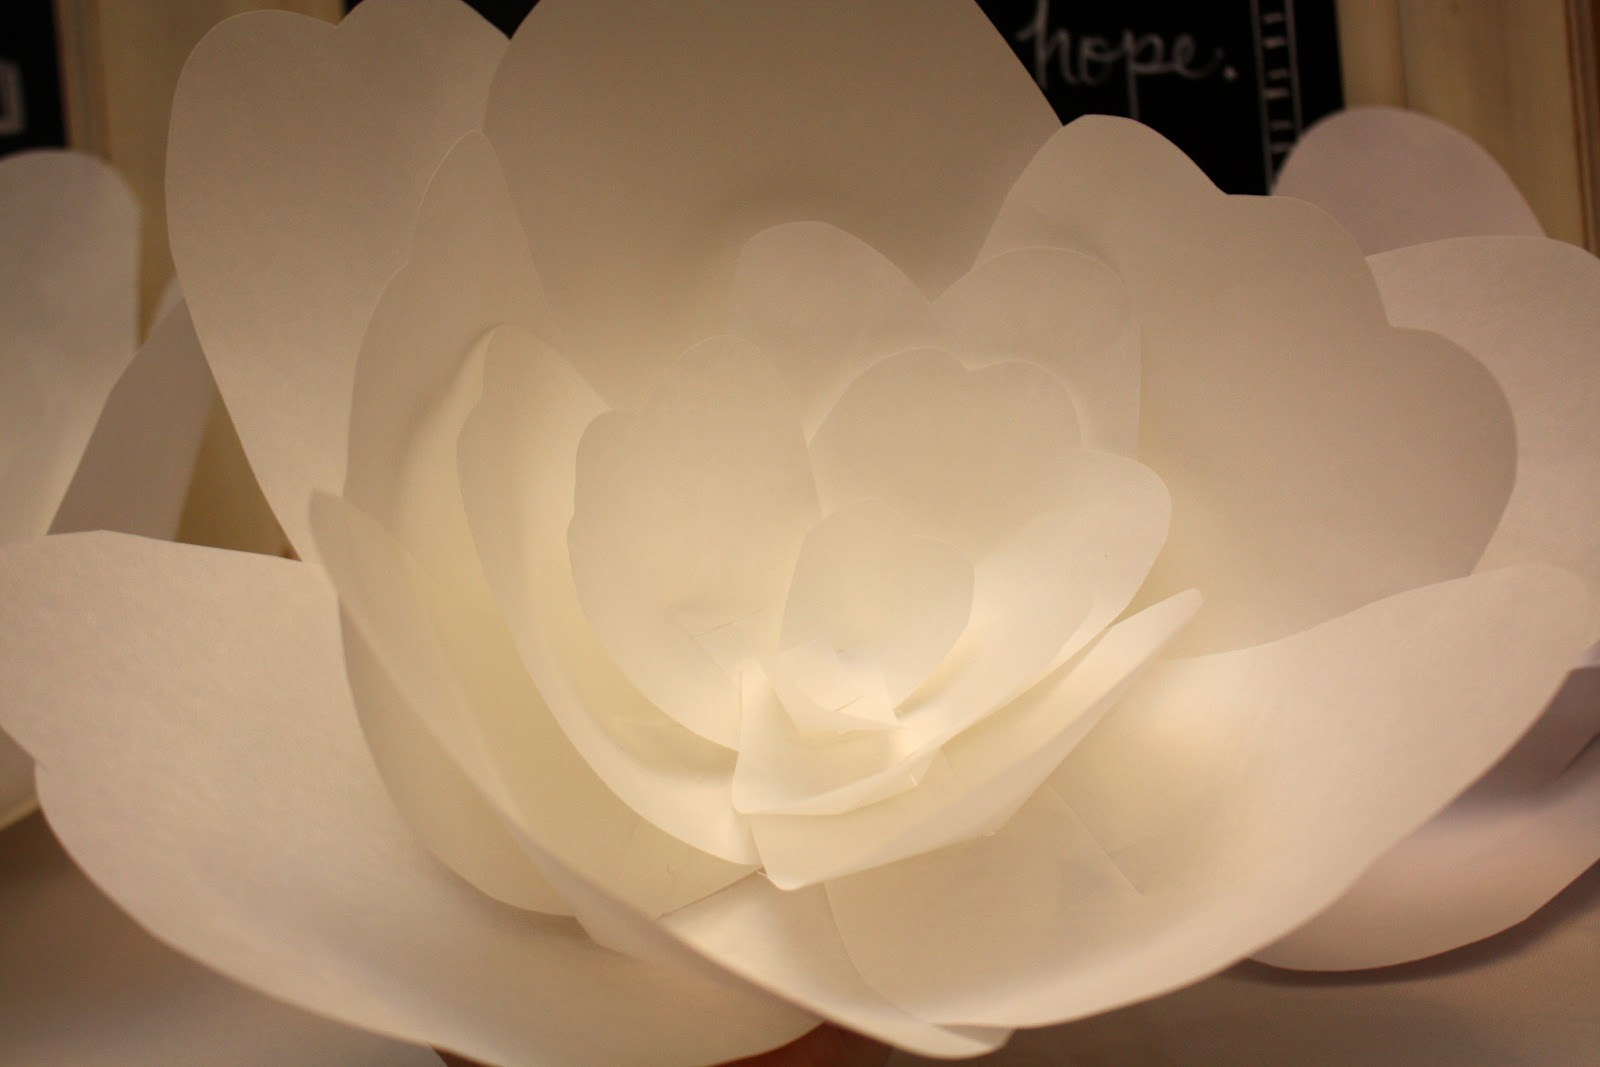 At Second Street DIY giant paper flowers